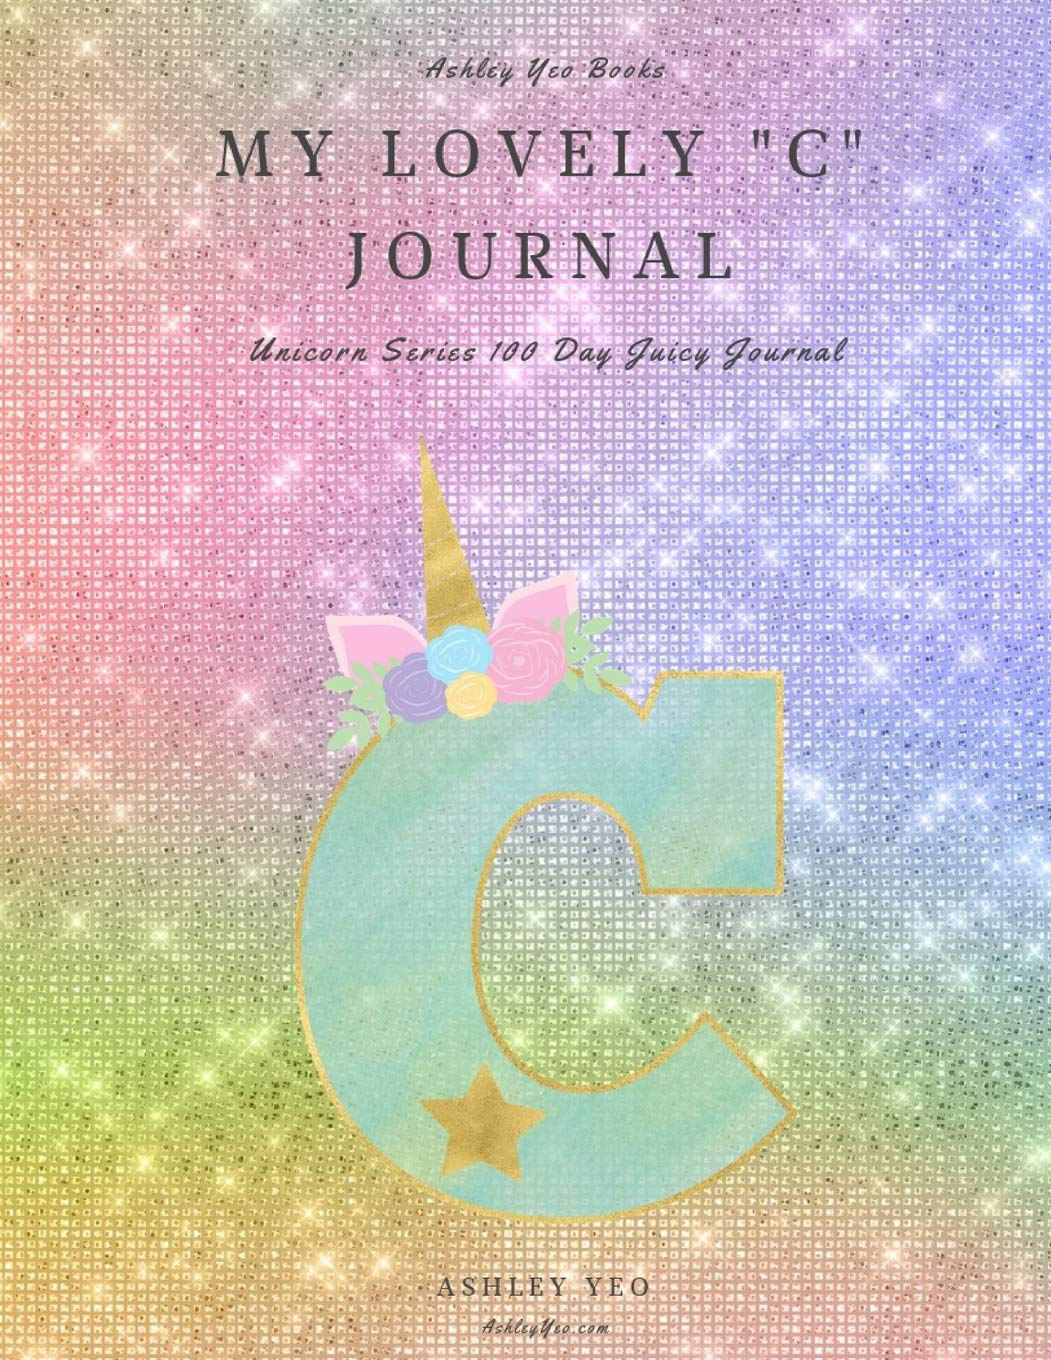 """My Lovely """"C"""" Journal: Unicorn Series 100 Day Juicy Journal"""